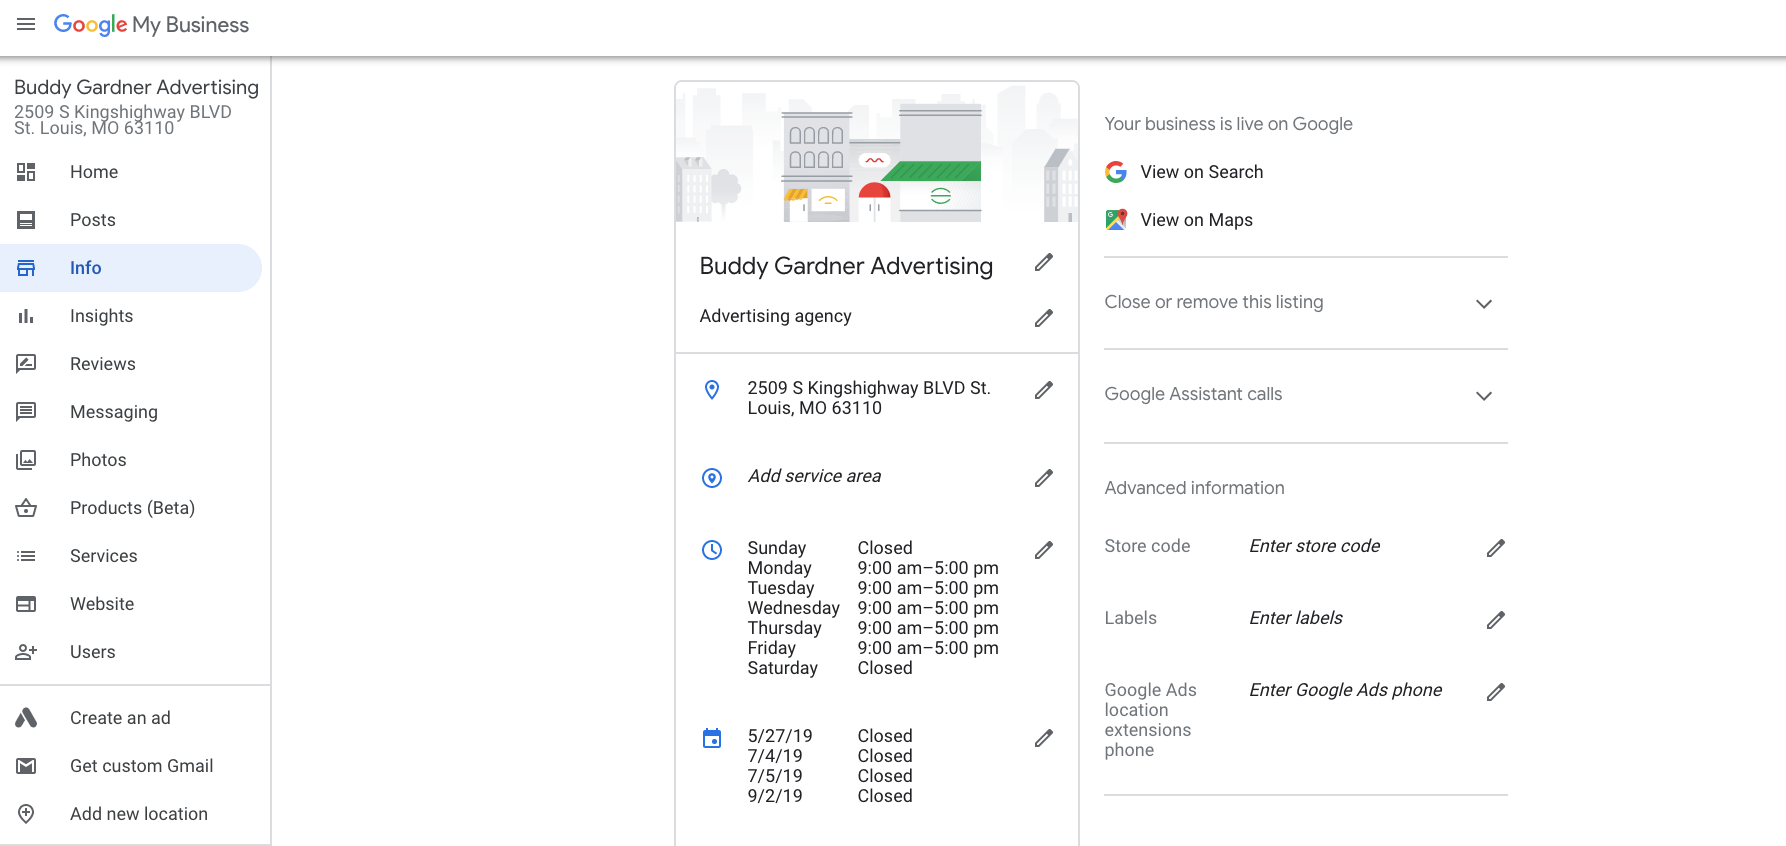 Google My Business info editor for the listing owner